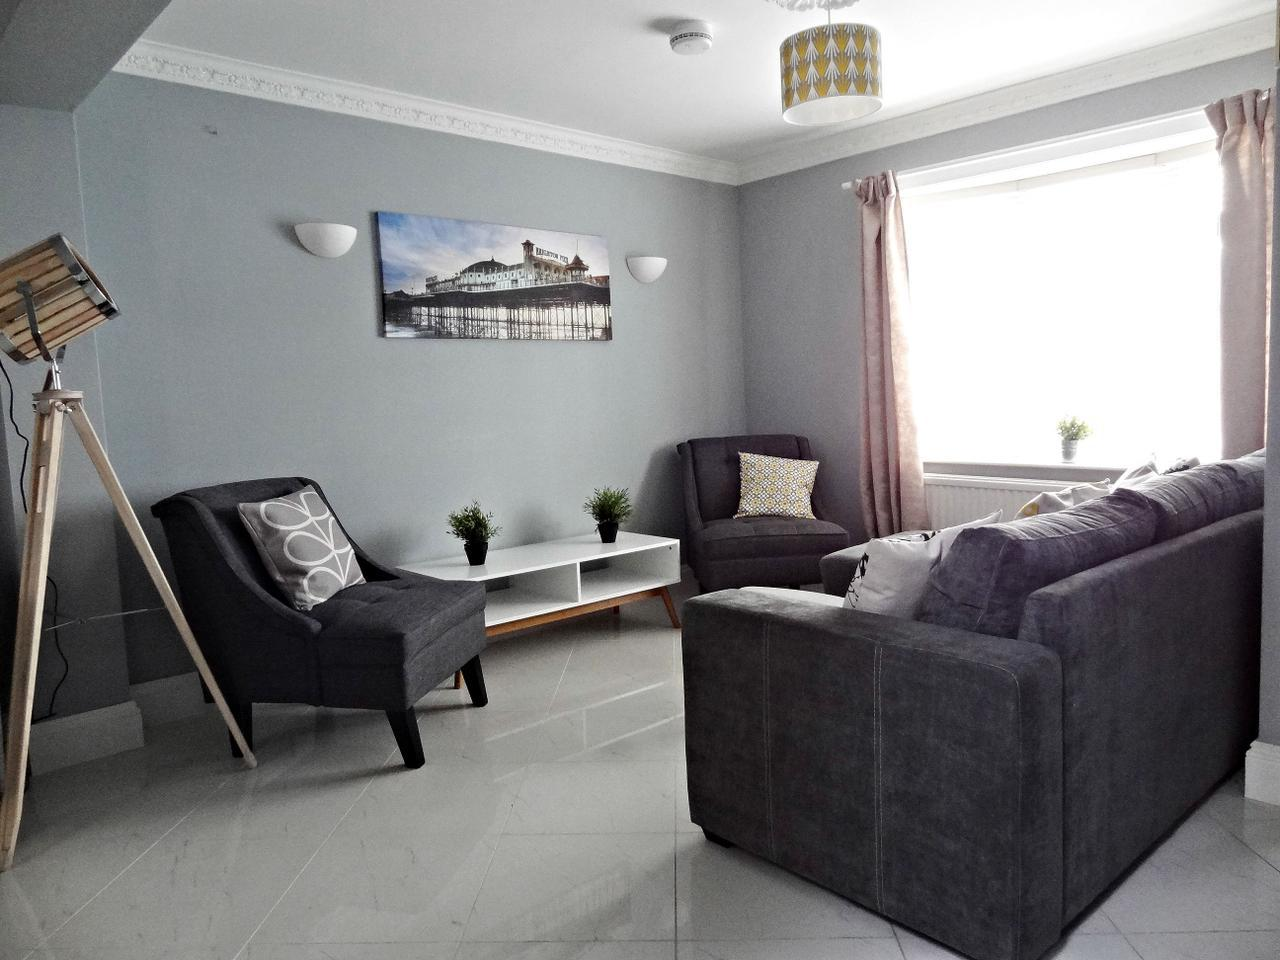 Seaside House, Brighton & Hove Images - 2